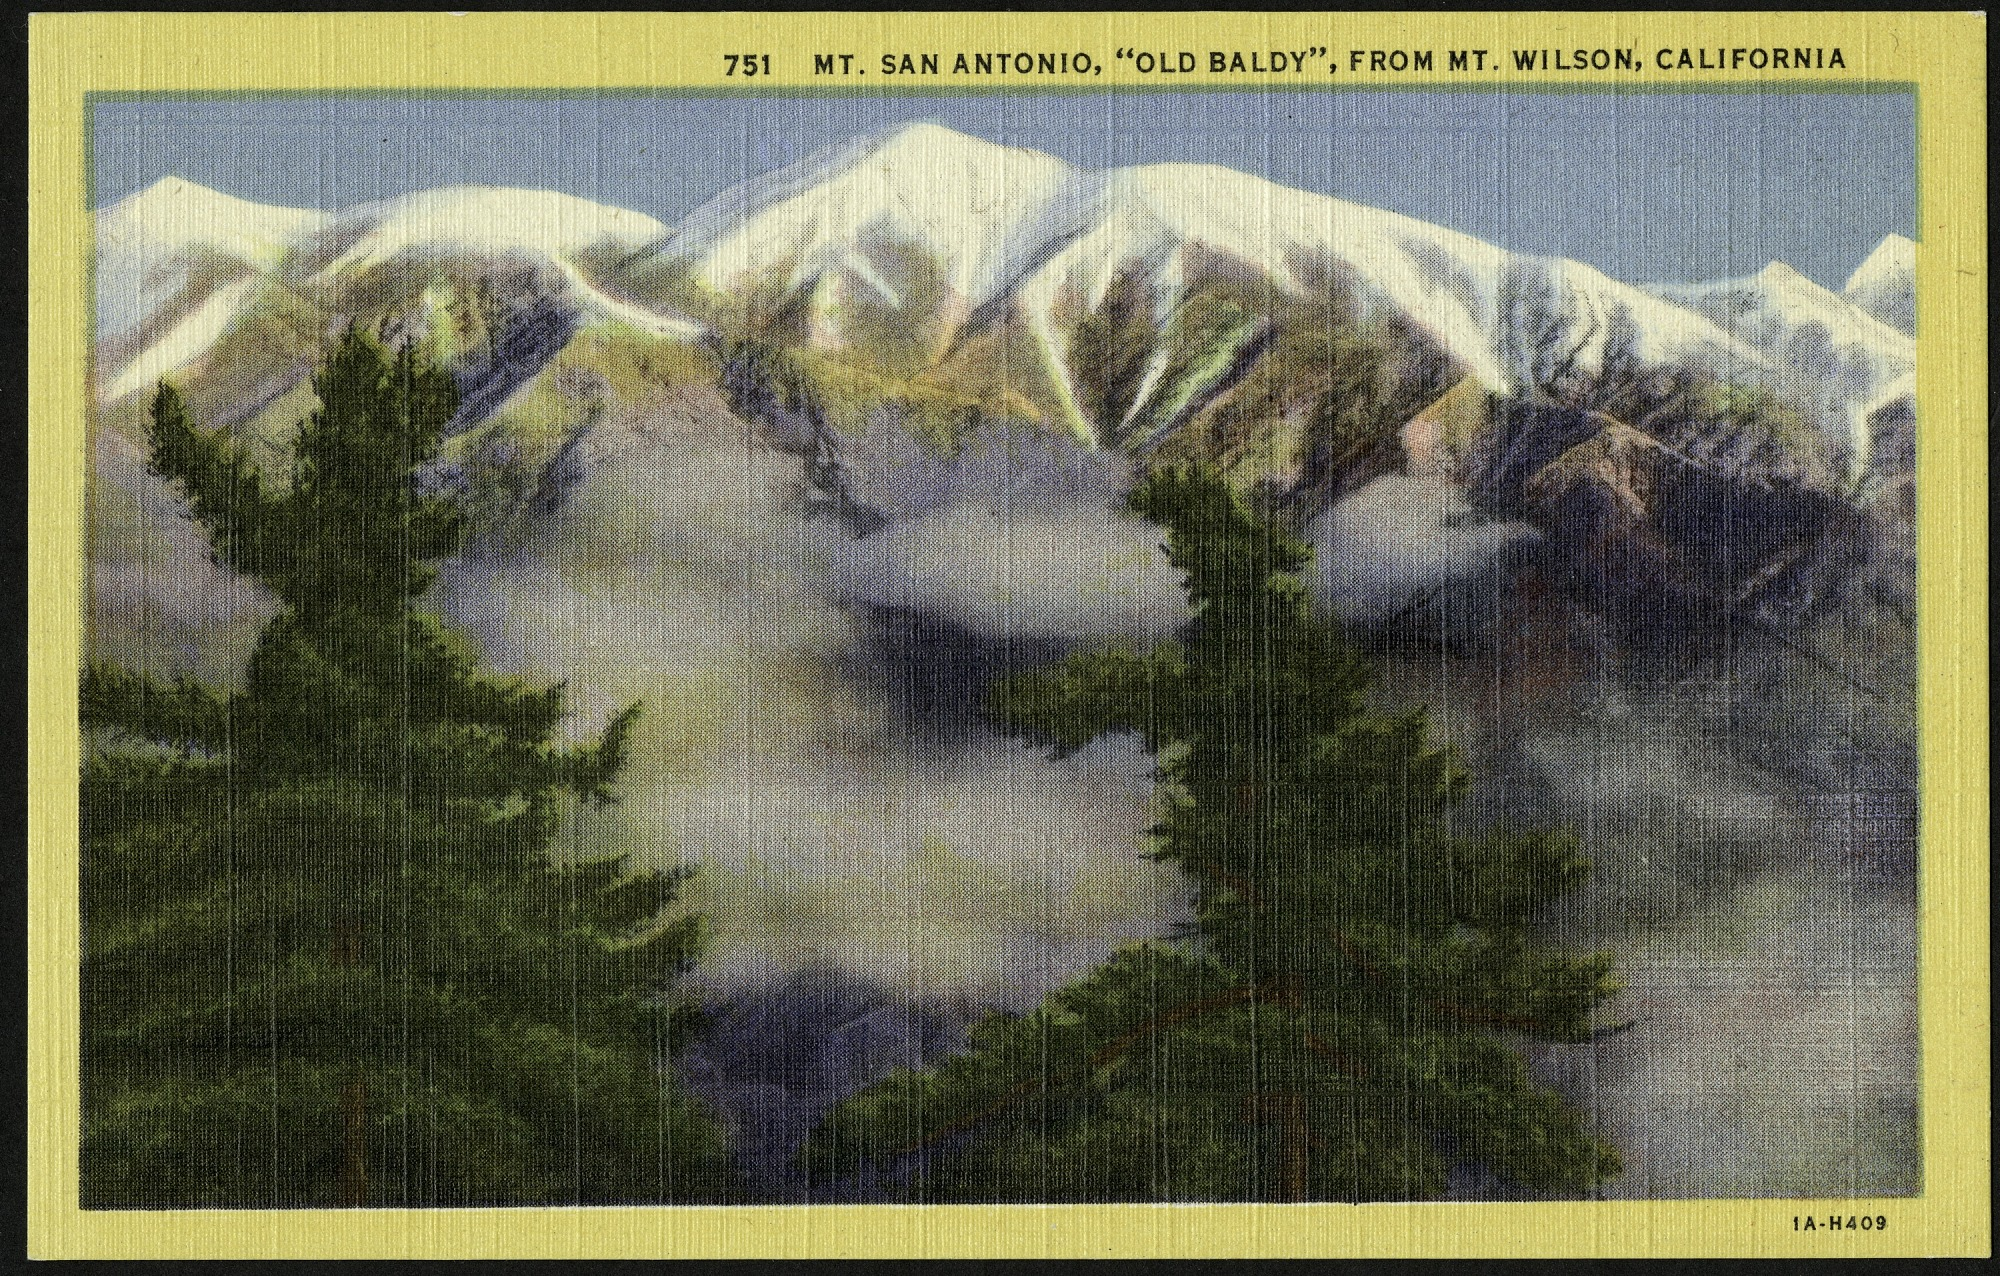 Postcard of Mt. San Antonio